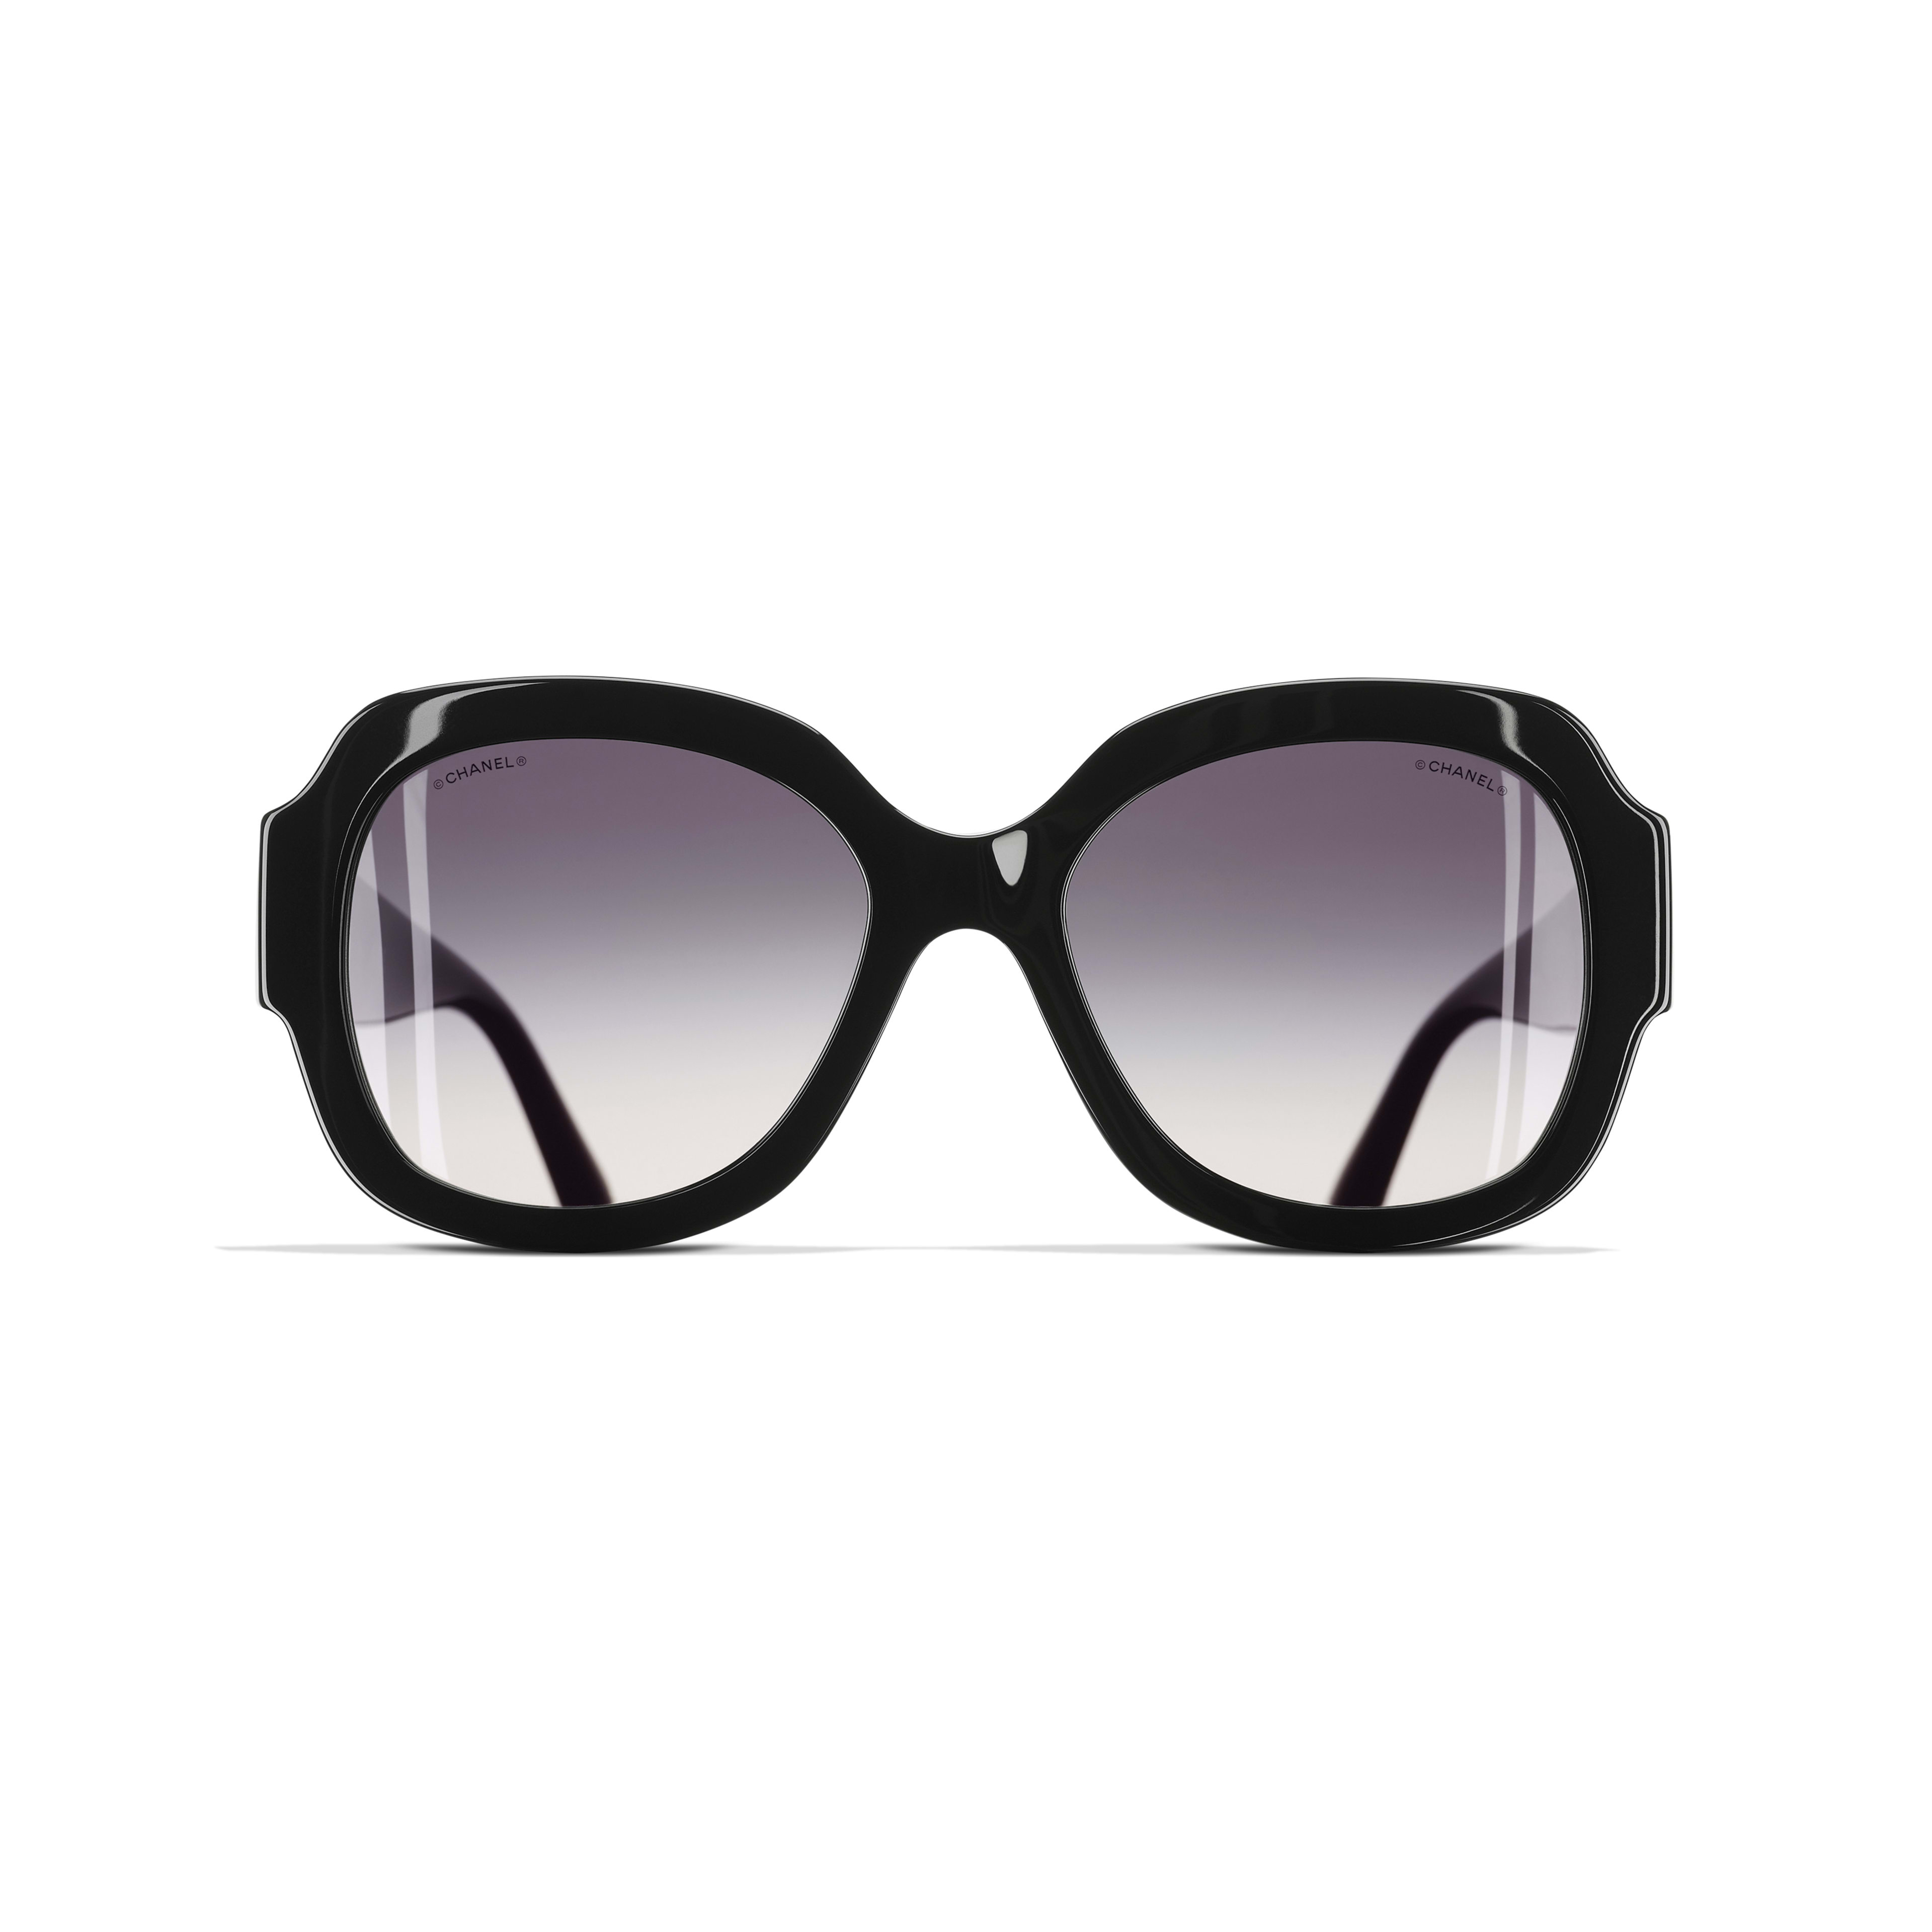 Square Sunglasses Acetate Black -                                                    view 2 - see full sized version